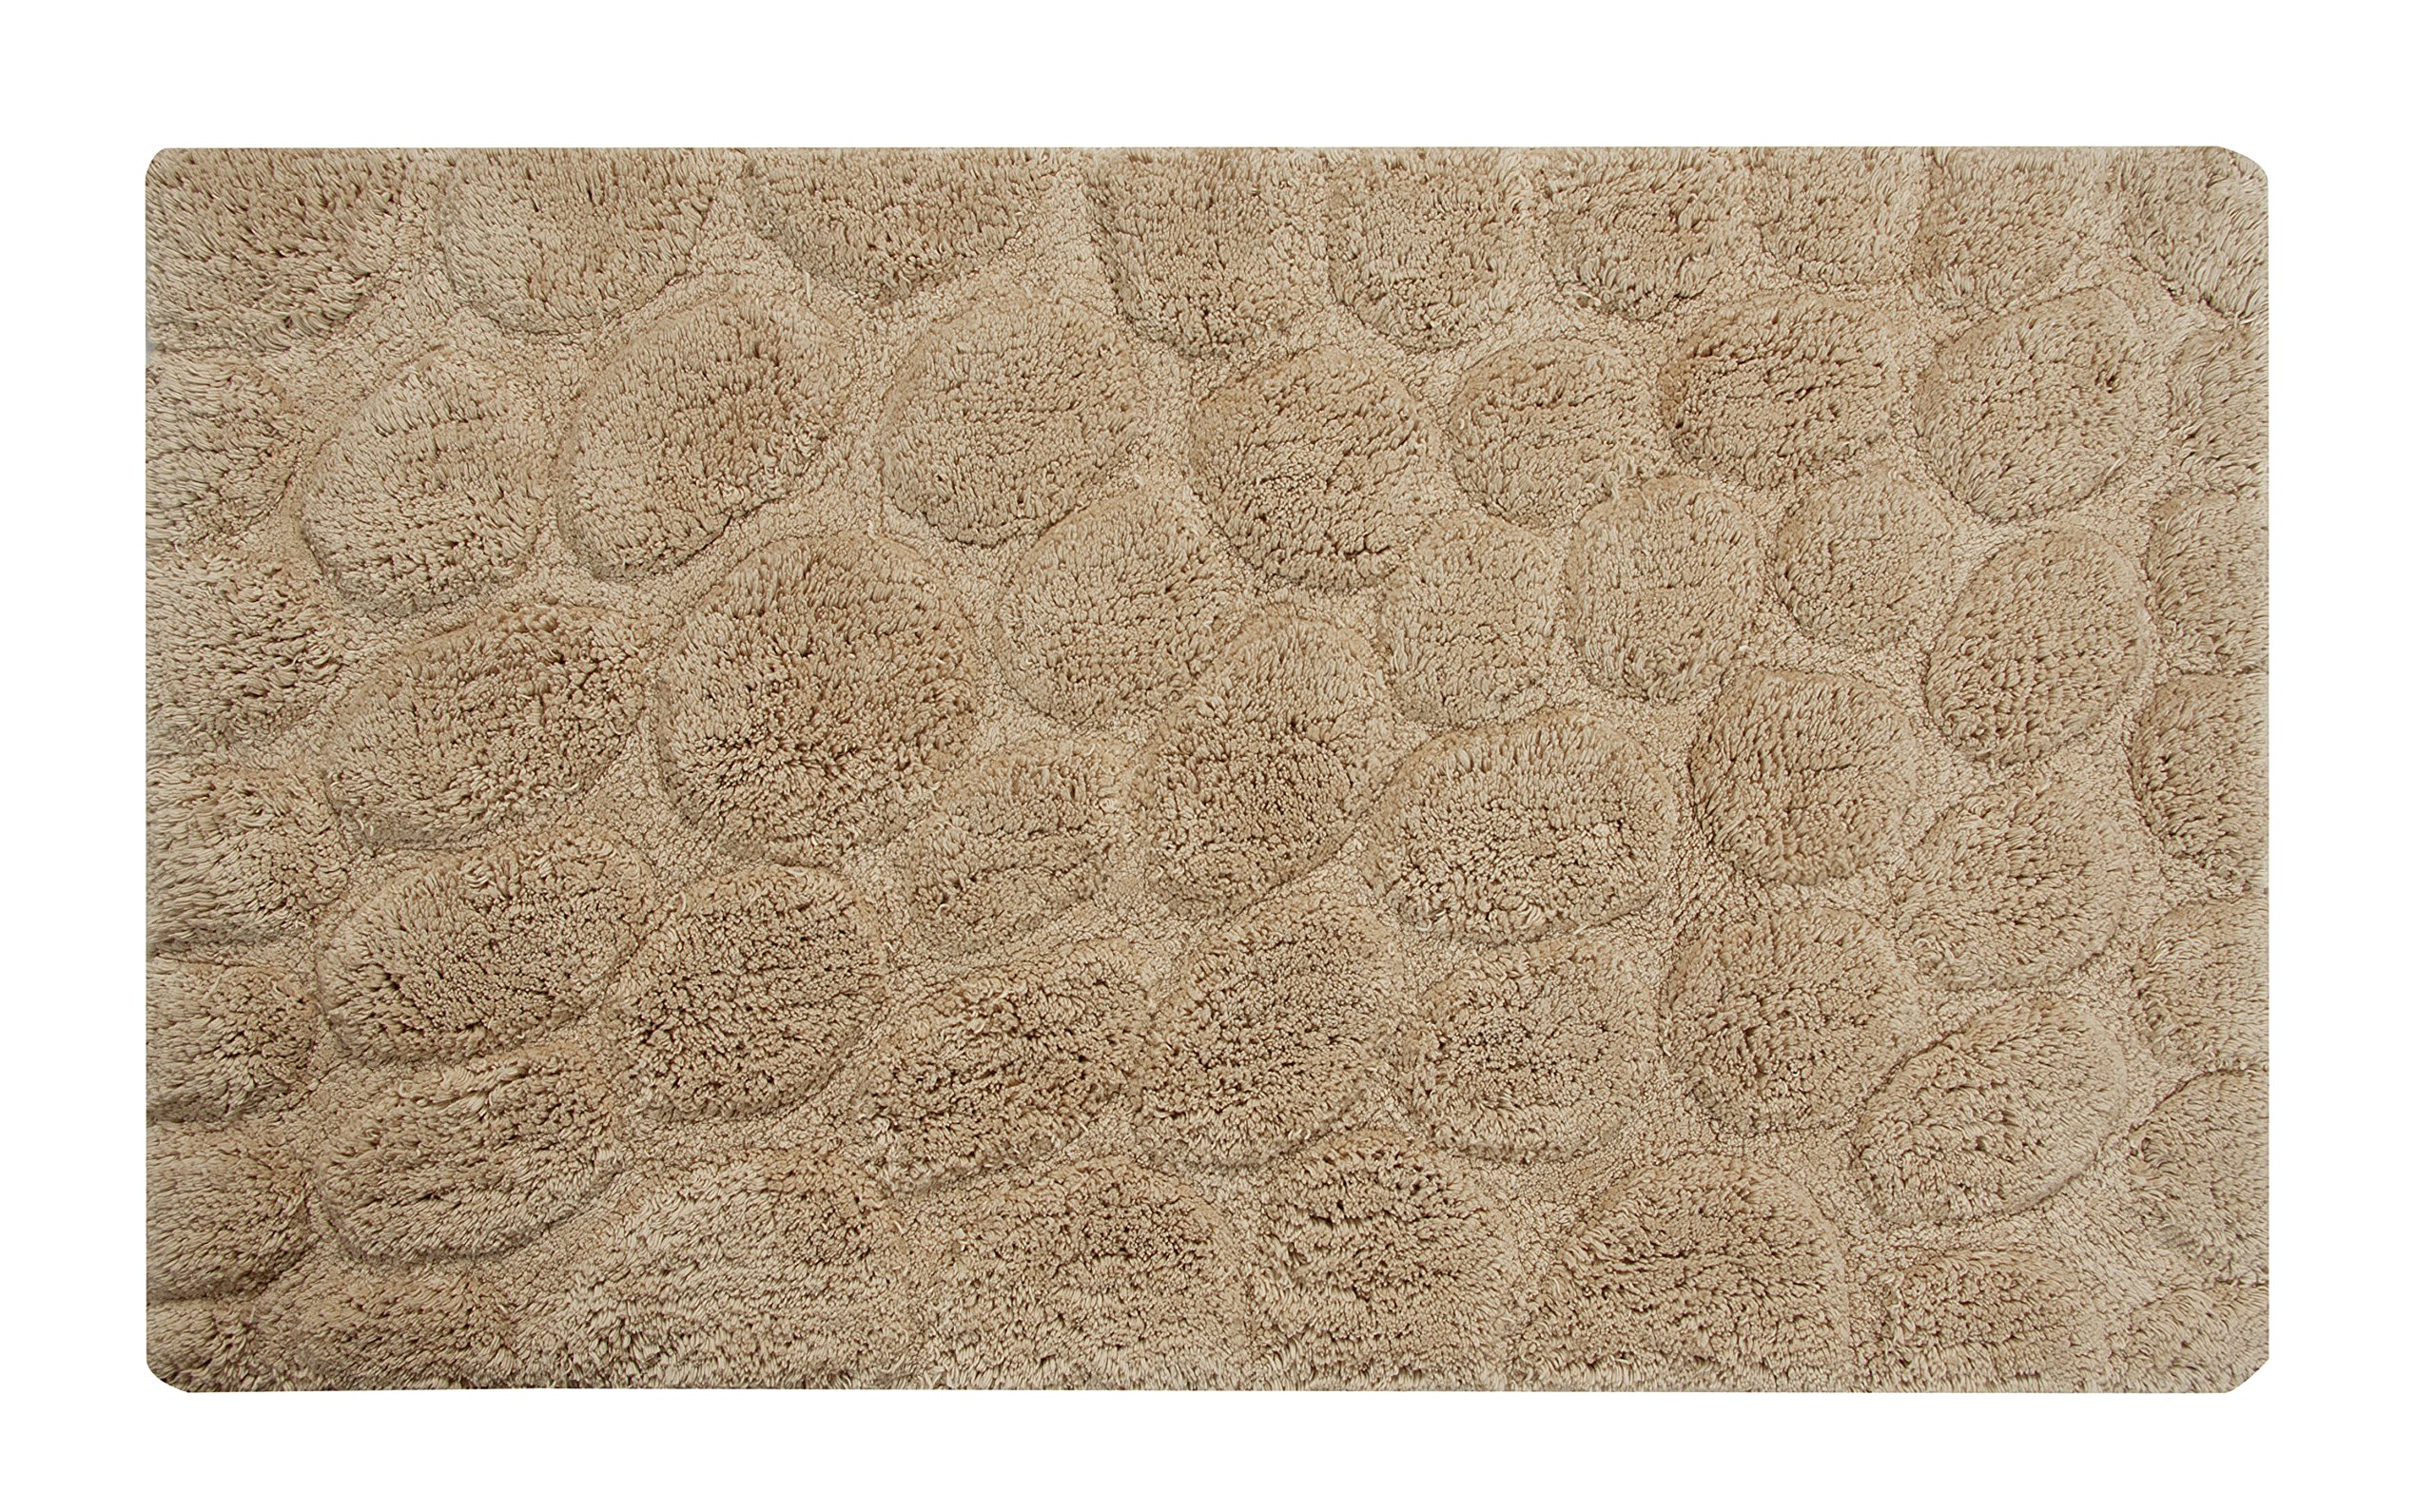 Saffron Fabs Bath Rug 100% Soft Cotton, Size 34x21 Inch, Latex Spray Non-Skid Backing, Beige Color, Pebbles Pattern, Hand Tufted, Heavy 190 GSF Weight, Machine Washable, Rectangular Shape - Latex Spray Non-Skid backing, Solid Color, Pebbles Stone Pattern 100% Cotton, provides high water absorbance, perfect for bathroom use. Super soft and plush. This rug can be used as area rug in Kitchen, Bedroom, Hotels, and SPA etc Machine washable; cold separately; gentle cycle; and dryable for easy care; less prone to shrinking or pilling and retains color better, even after repeated washings - bathroom-linens, bathroom, bath-mats - A127lLH G L -